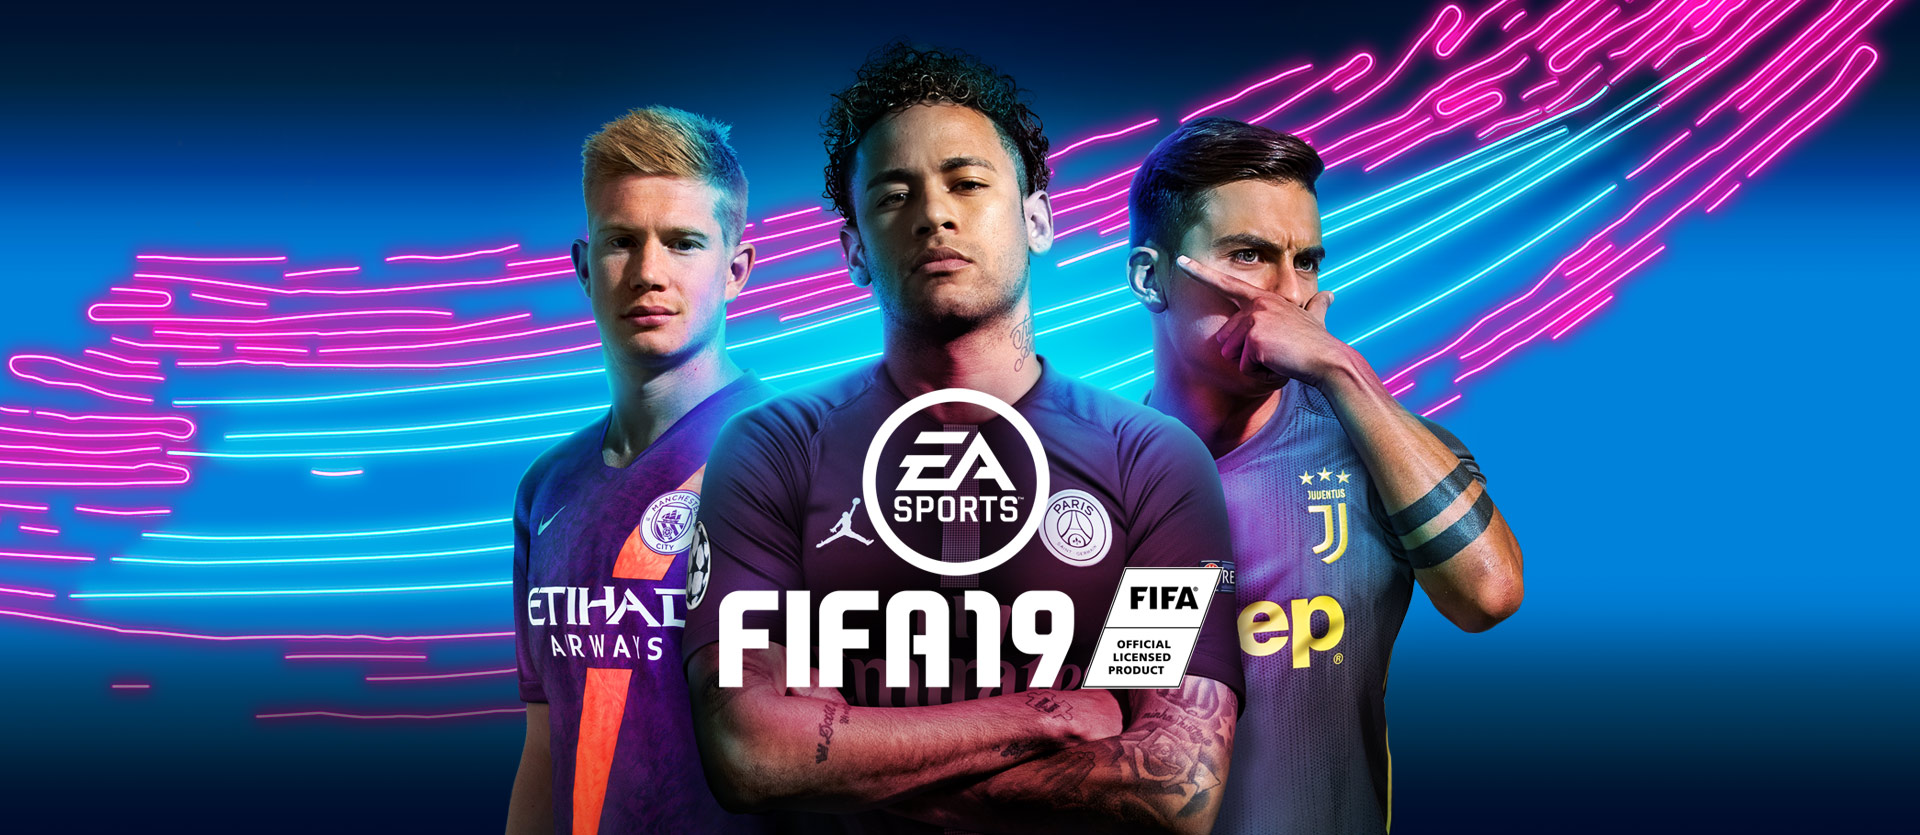 FIFA 19 Ultimate Team Kevin De Bruyne, Neymar, and Paulo Dybala posing with ultimate team jerseys